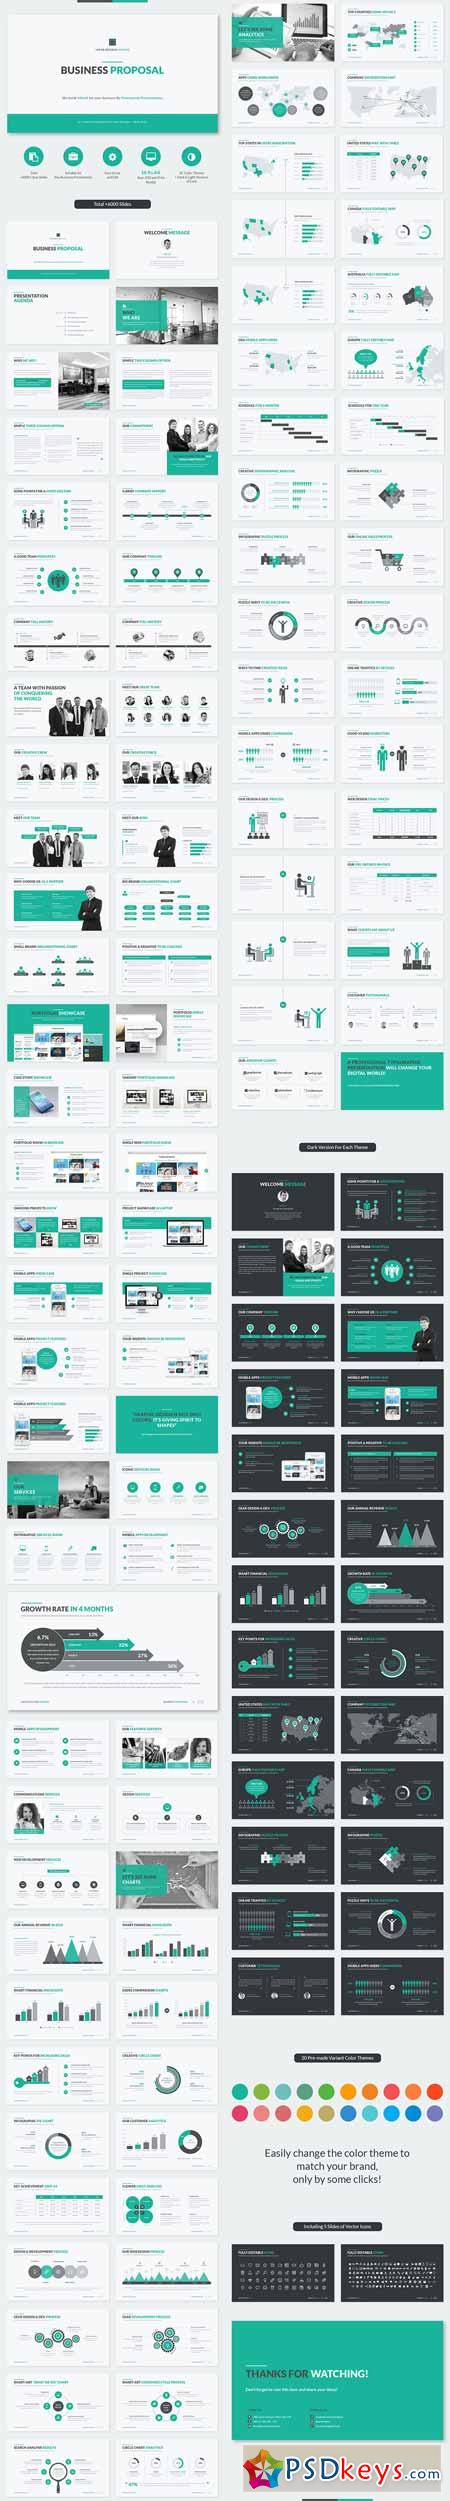 Business proposal powerpoint template 11833931 free download business proposal powerpoint template 11833931 cheaphphosting Image collections